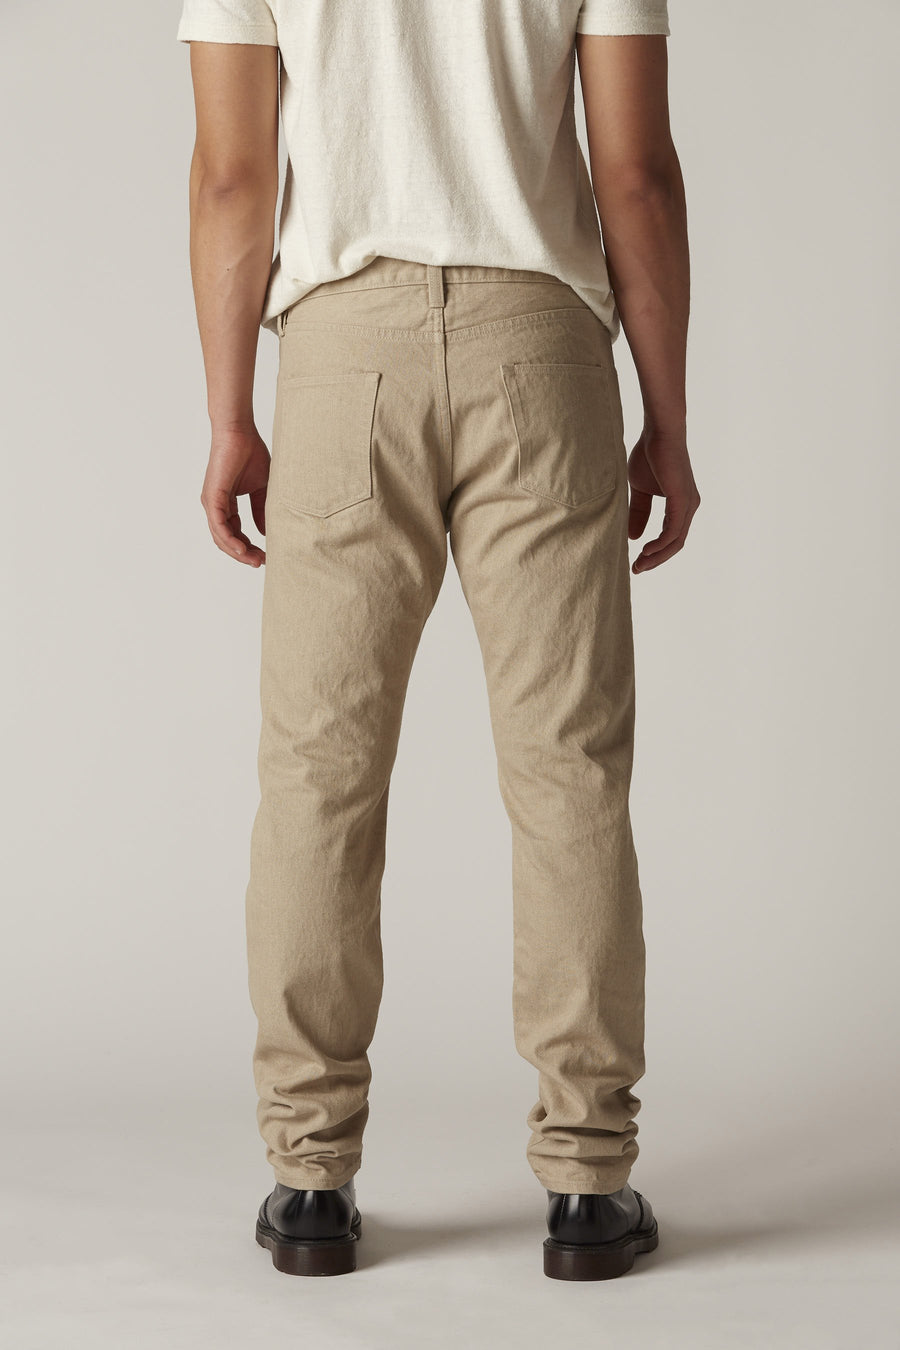 M001 Narrow in Tan Rinse Wash 1